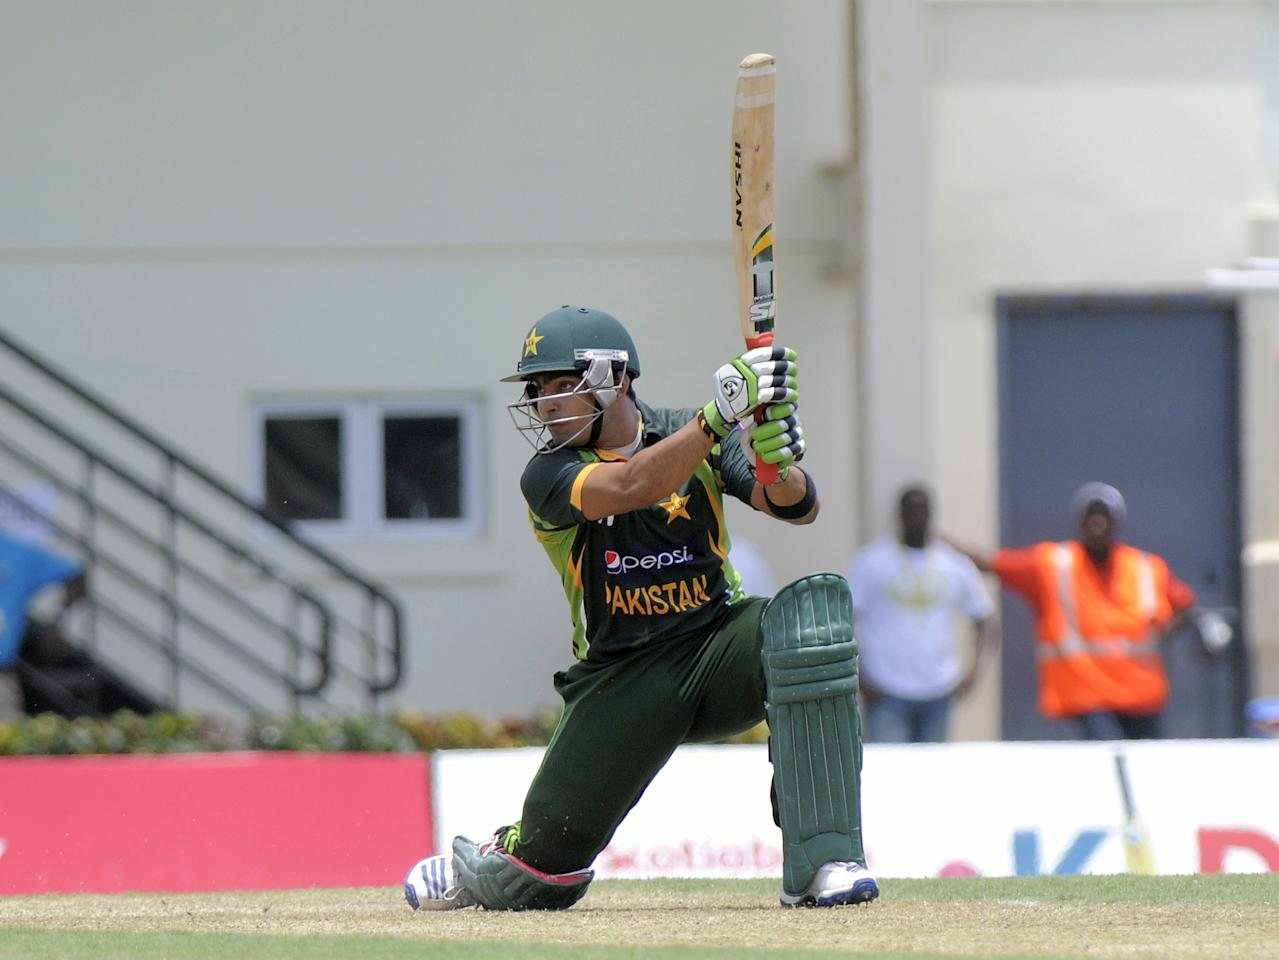 Pakistan batsman Umar Akmal on his way to 40 not out during the 3rd ODI West Indies v Pakistan at Beausejour Cricket Ground in Gros Islet on July 19, 2013. The wicket-keeper is Johnson Charles. Pakistan made 229-6 off their 50 overs in the third one-day international against the West Indies.    AFP PHOTO/Randy Brooks        (Photo credit should read RANDY BROOKS/AFP/Getty Images)